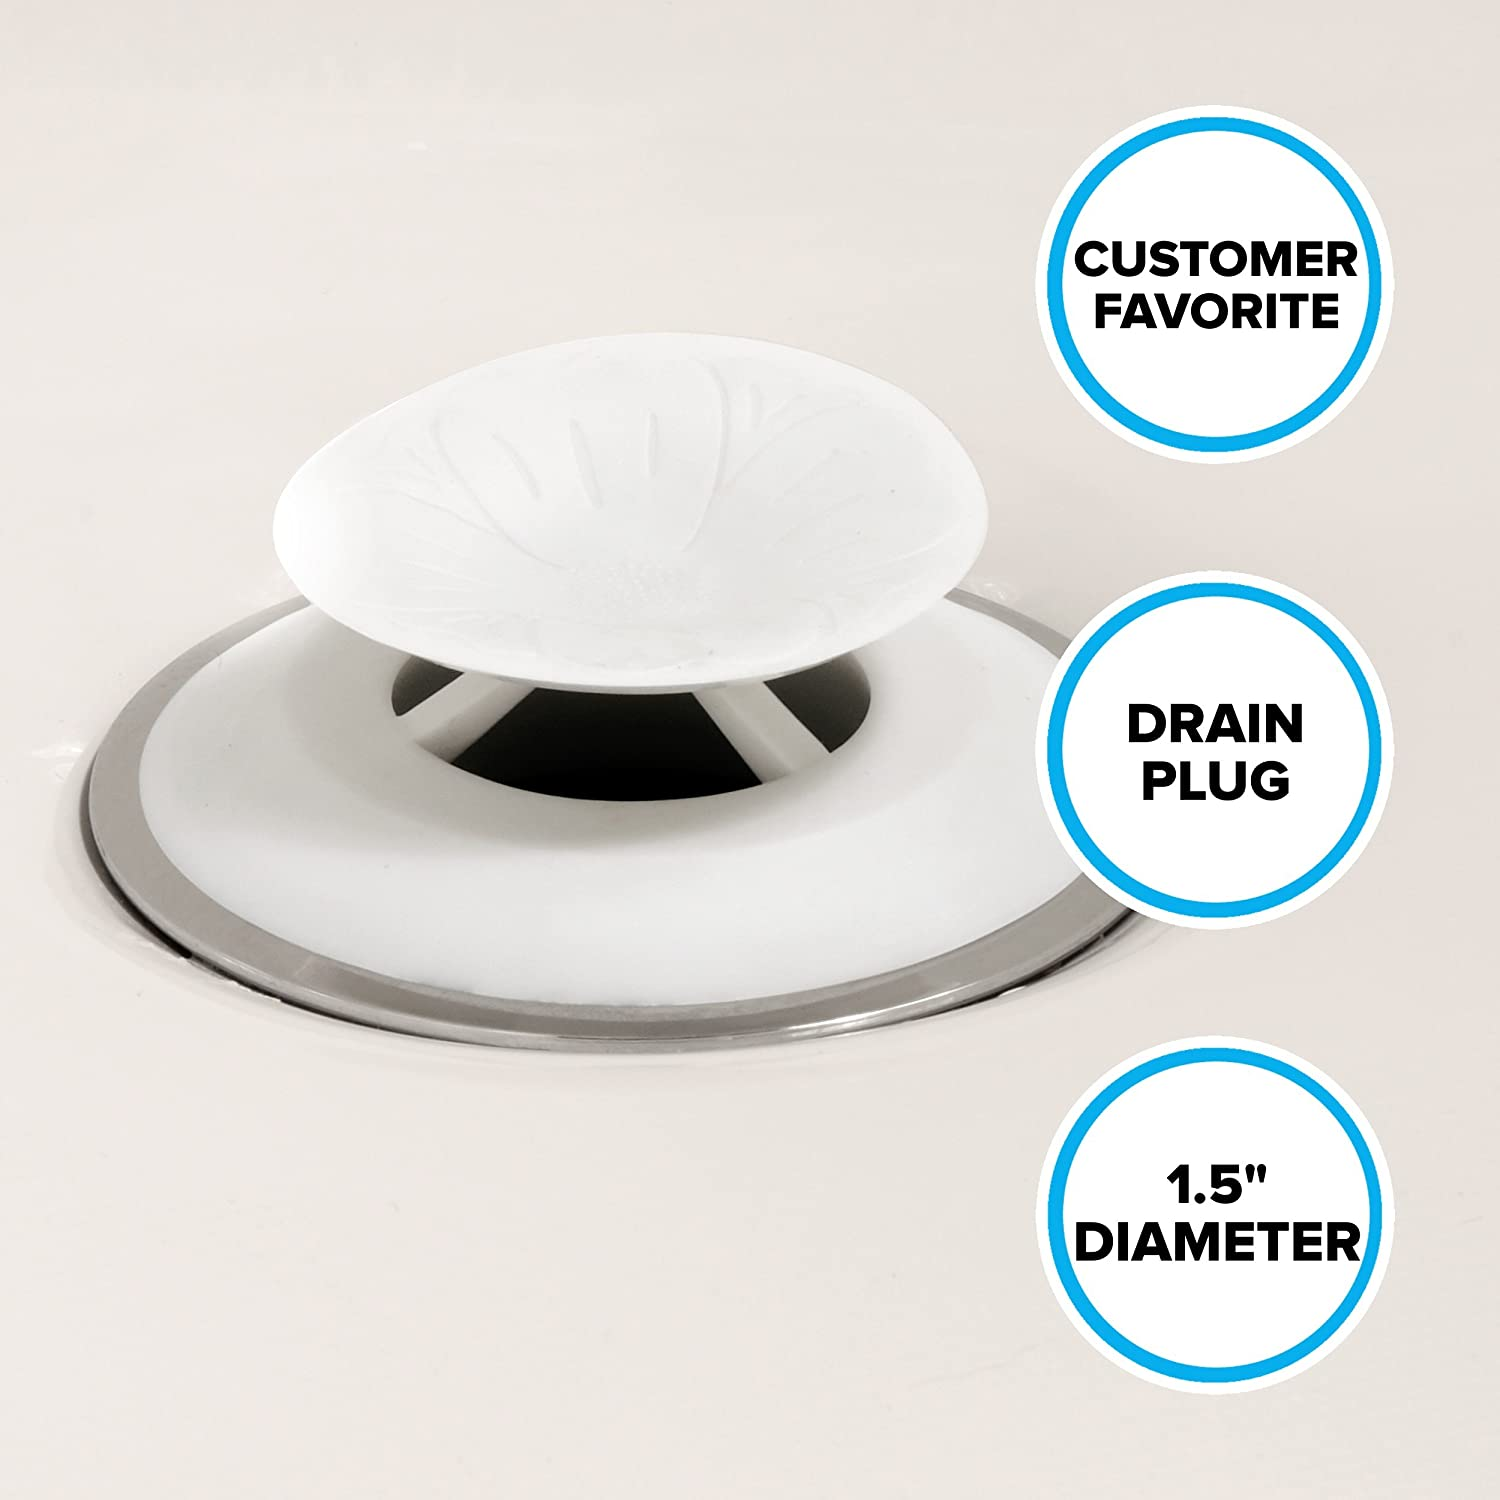 SlipX Solutions Snug Plug Bath Drain Stopper Seals Tightly Around Drain (Fits 1.5 Inch Open Drains, Great for Tubs, Easy Push Open/Close Design): Home & Kitchen